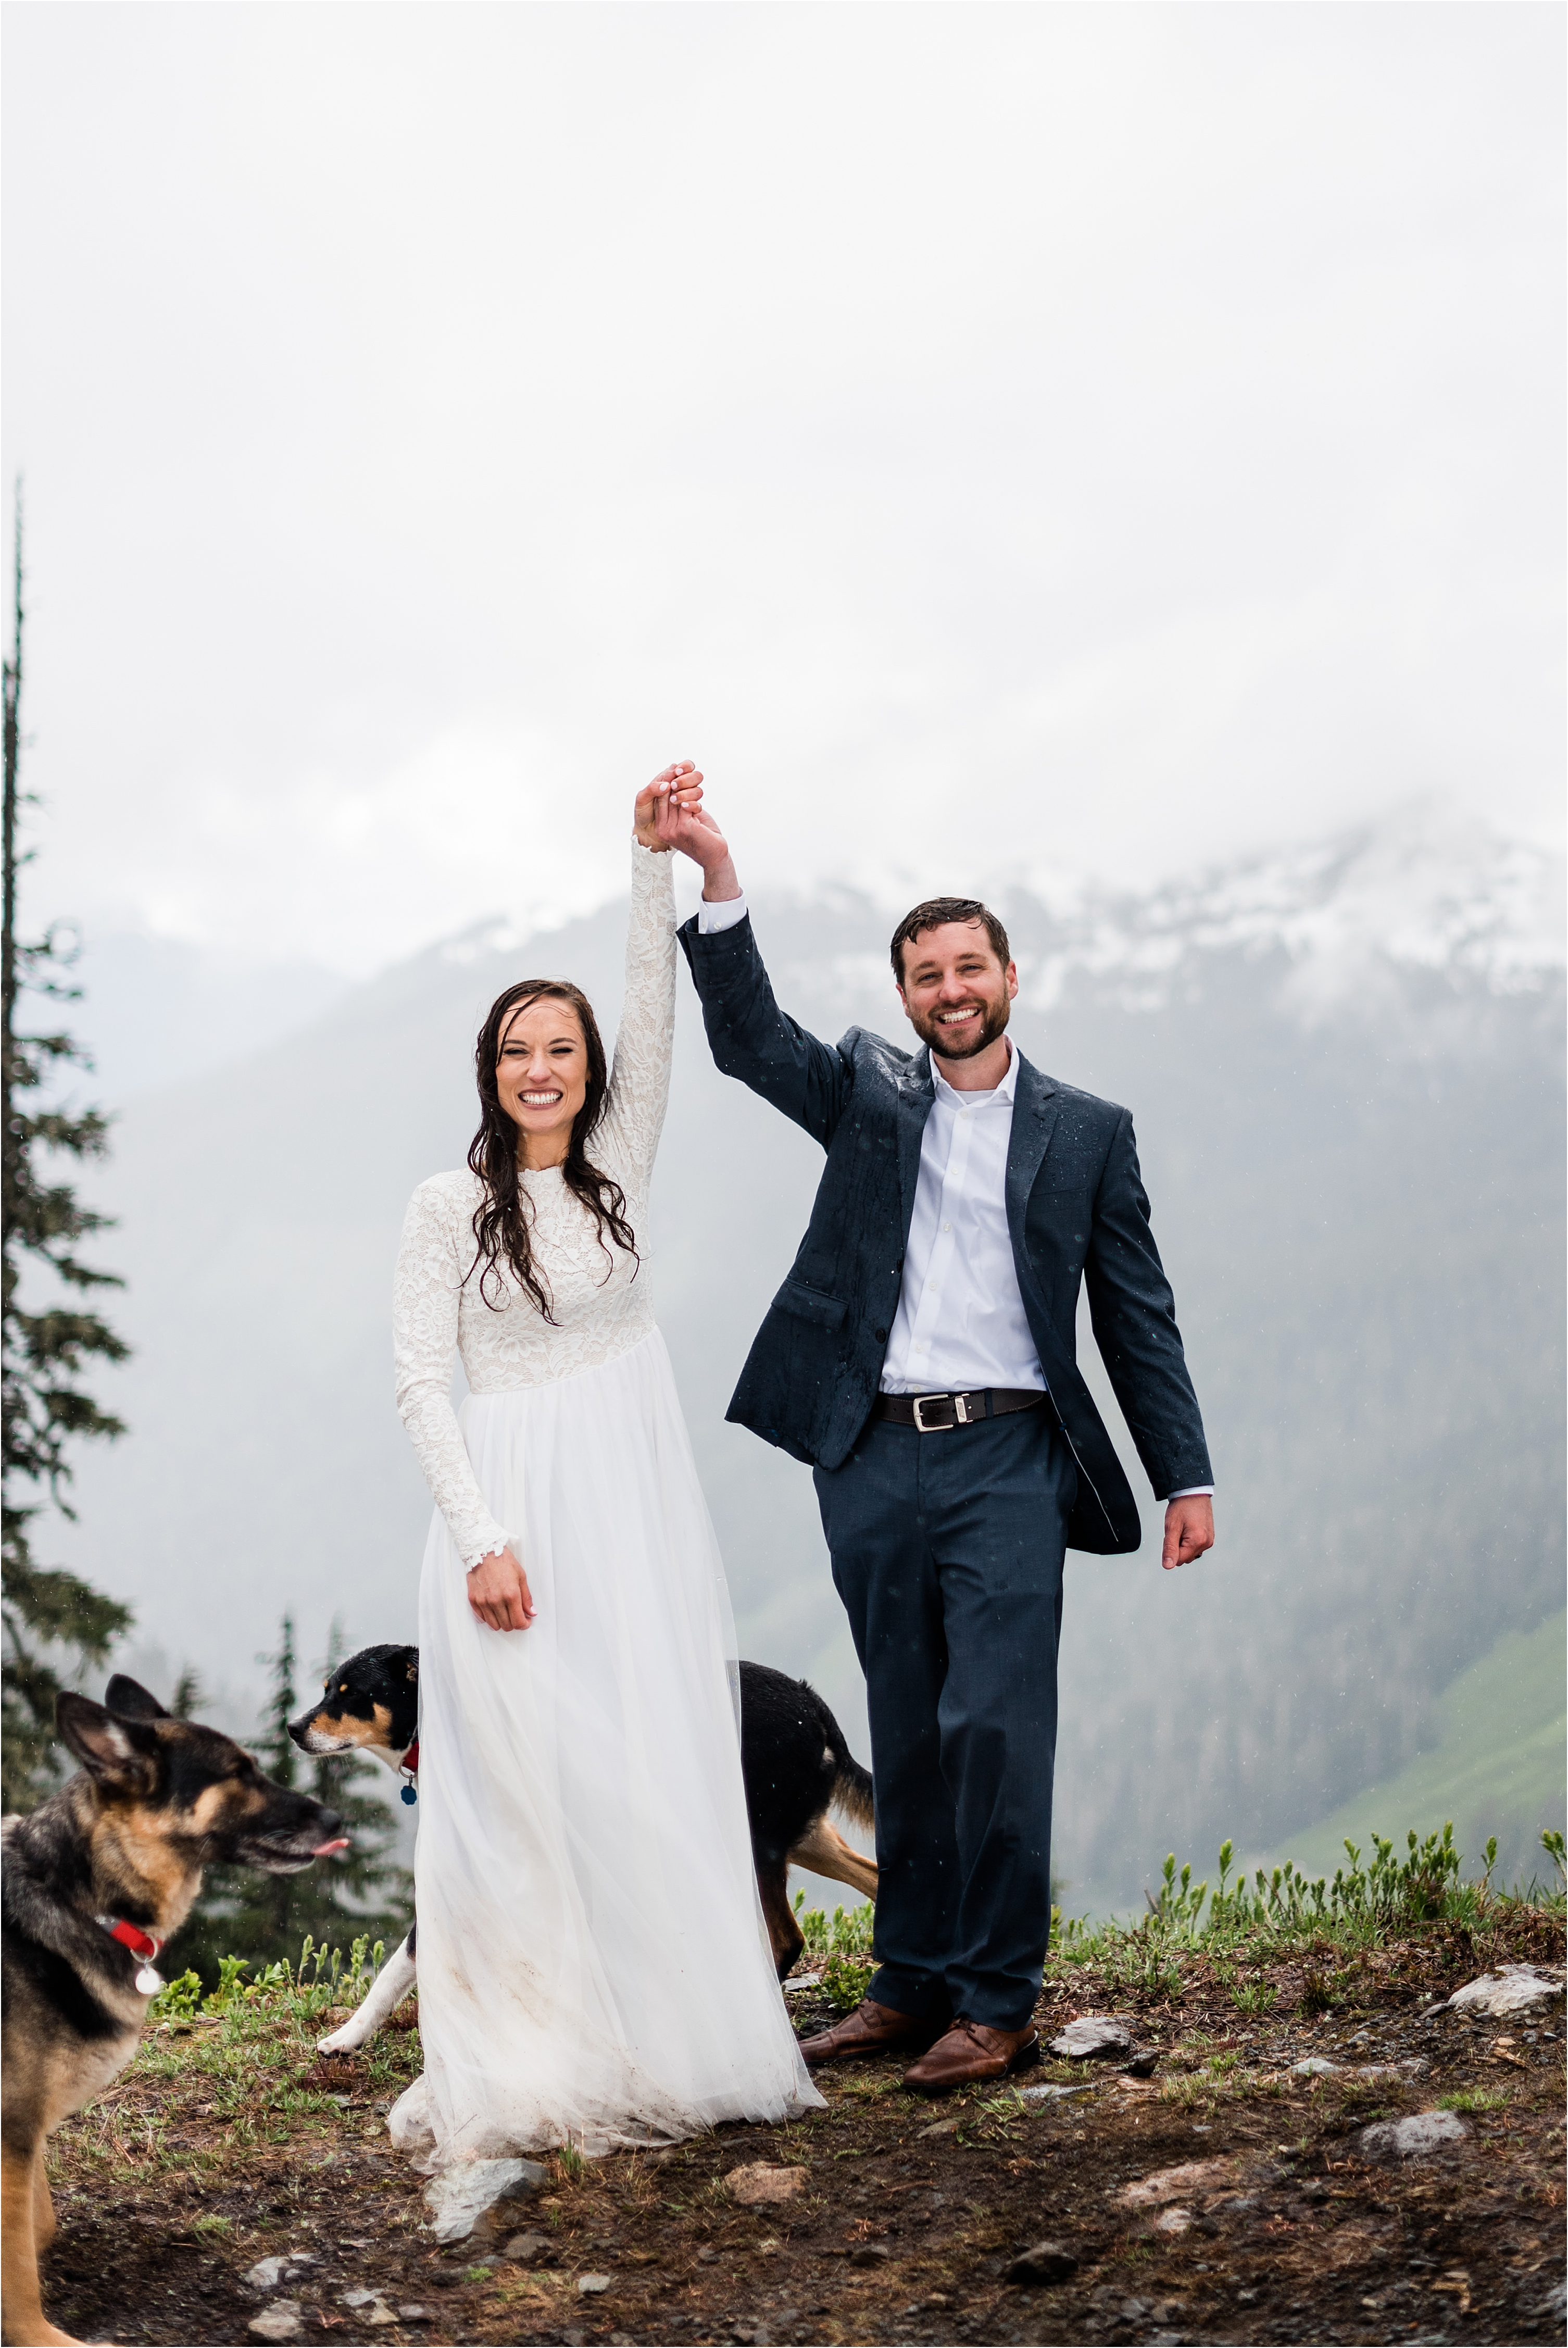 Christina & Tanner celebrating their elopement ceremony, surrounded by the North Cascade mountains and their two dogs. Image by Forthright Photo, Seattle Elopement Photographers.